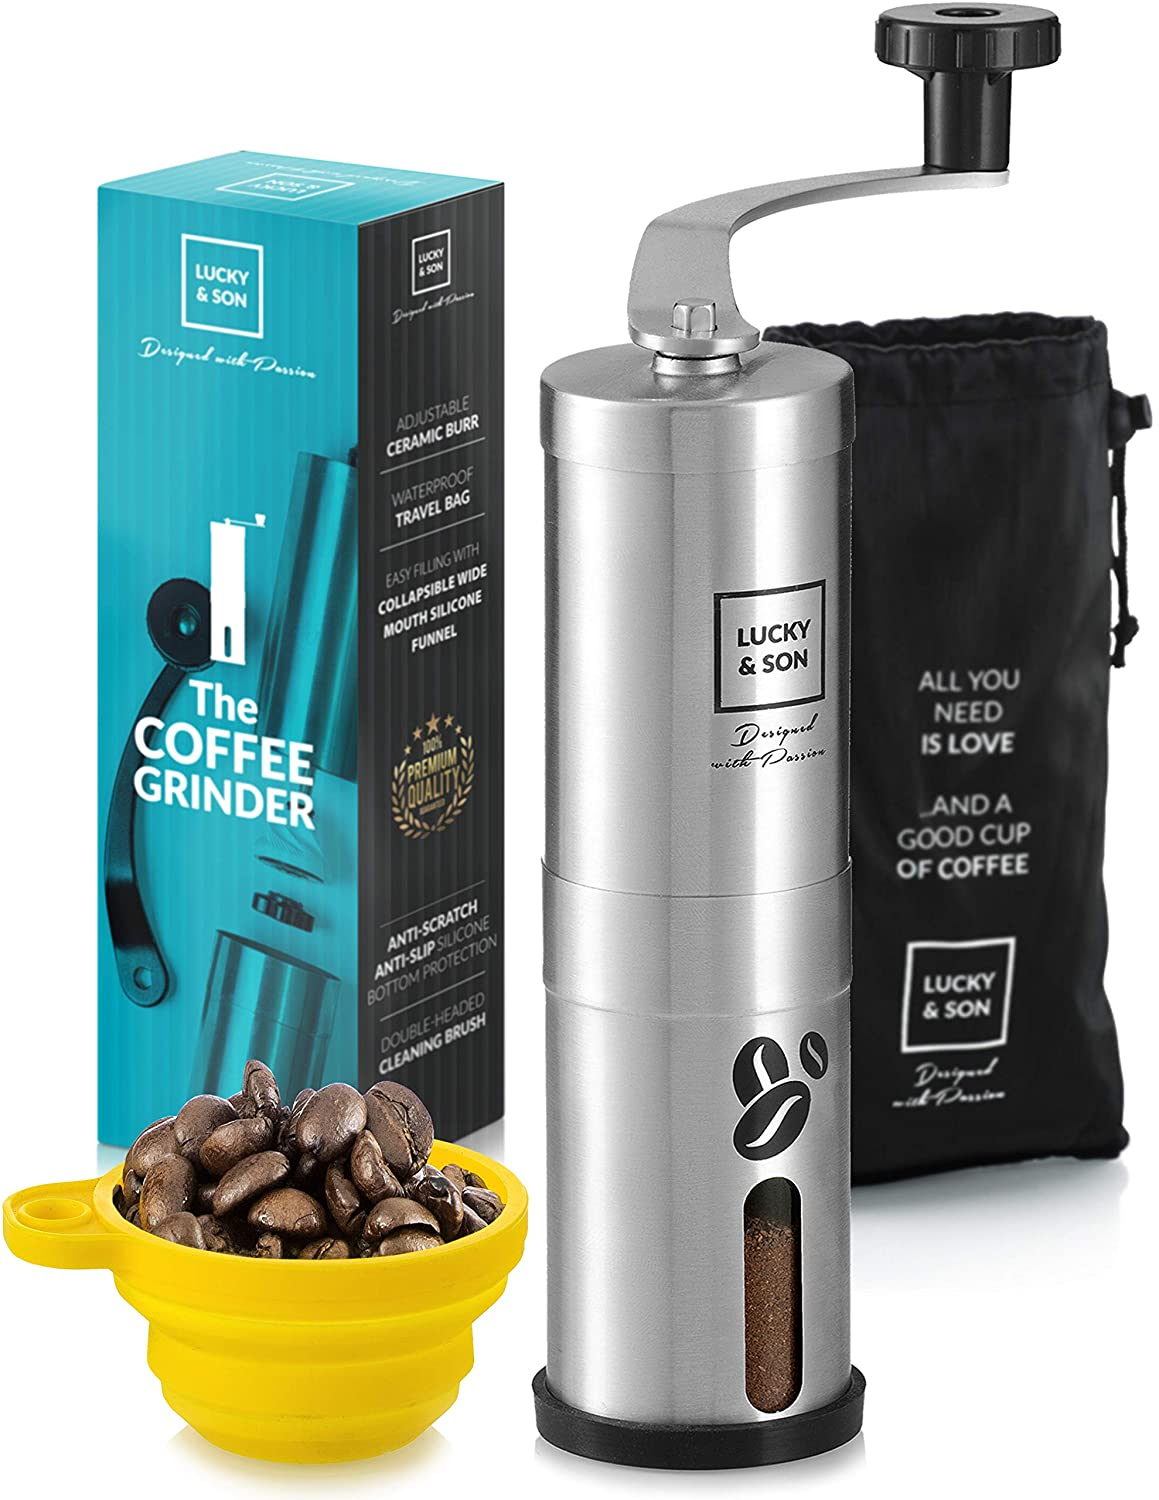 Portable Mini Burr Grinder Mill for Travel LUCKY /& SON Manual Coffee Grinder Hand Crank Conical Coffee Bean Grinder with Adjustable Ceramic Burr Best Coarse Grind for French Press